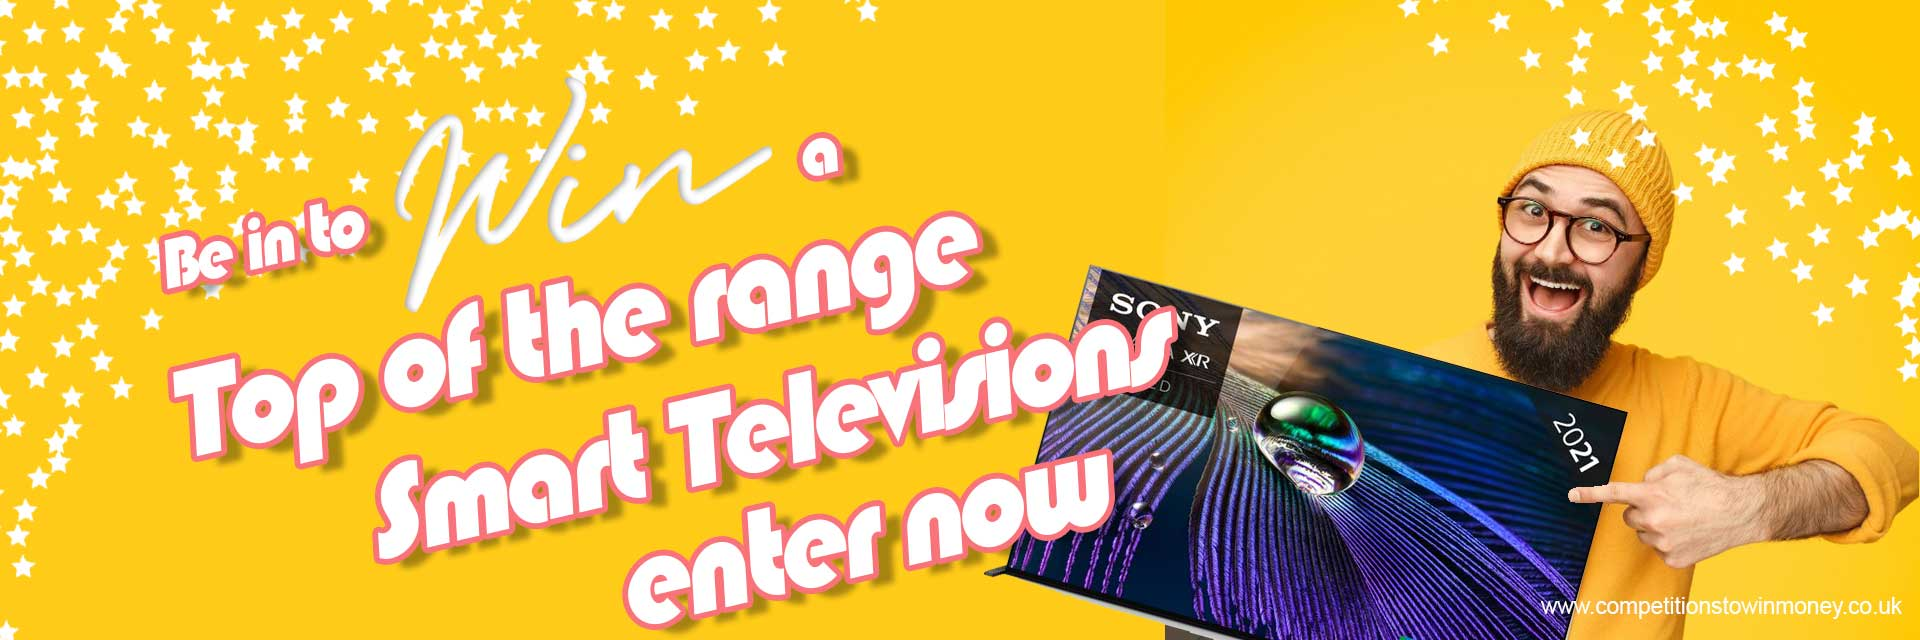 Competition to Win a Smart TV